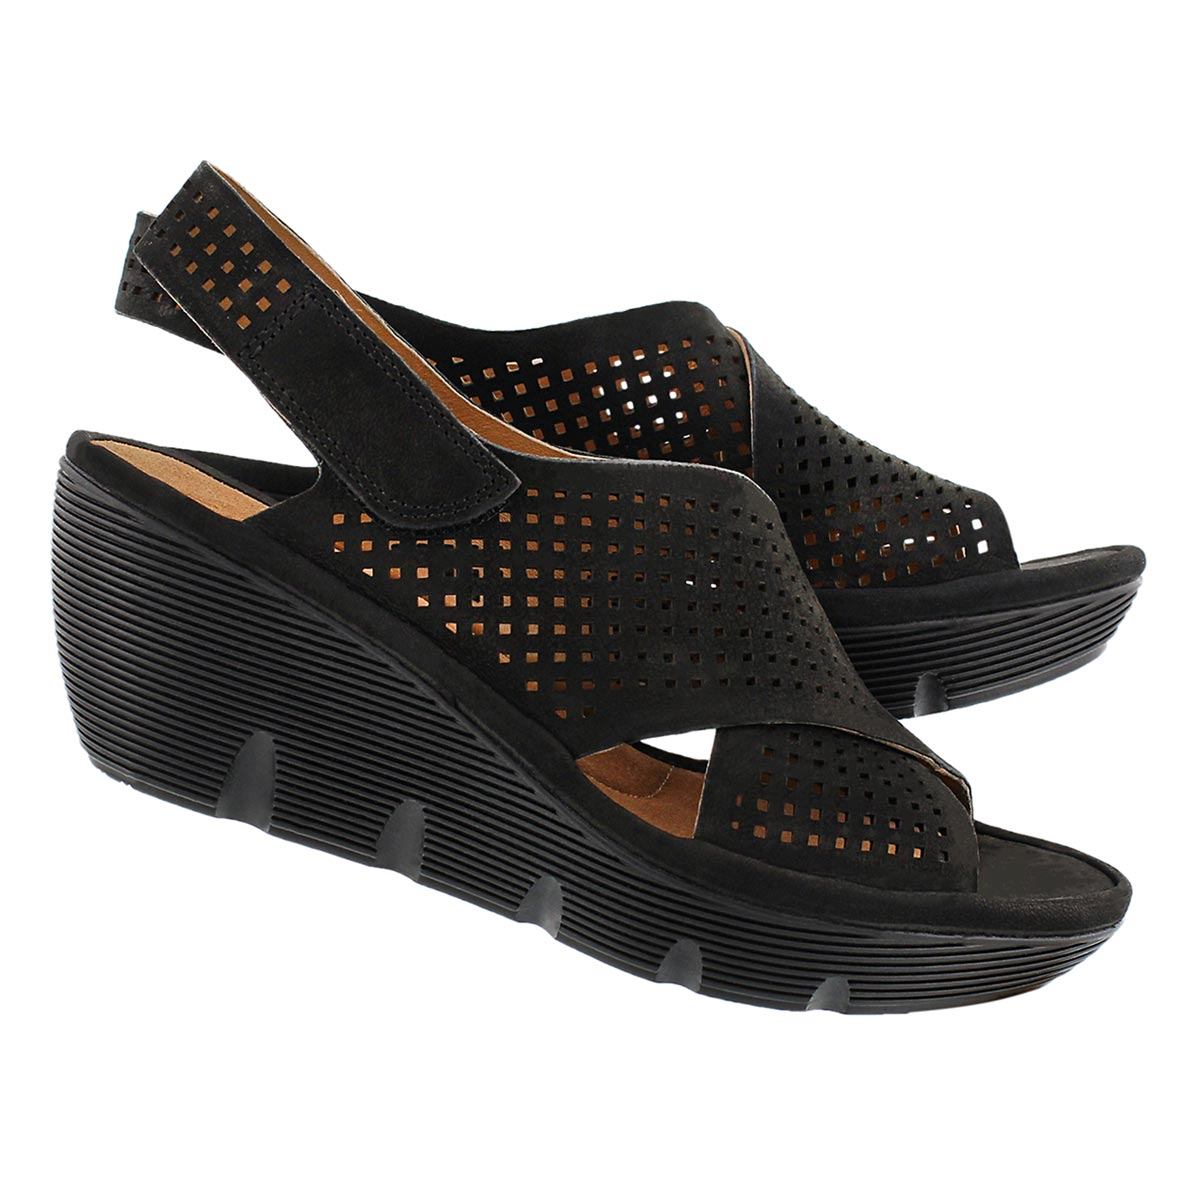 Lds Clarene Award blk wedge sandal